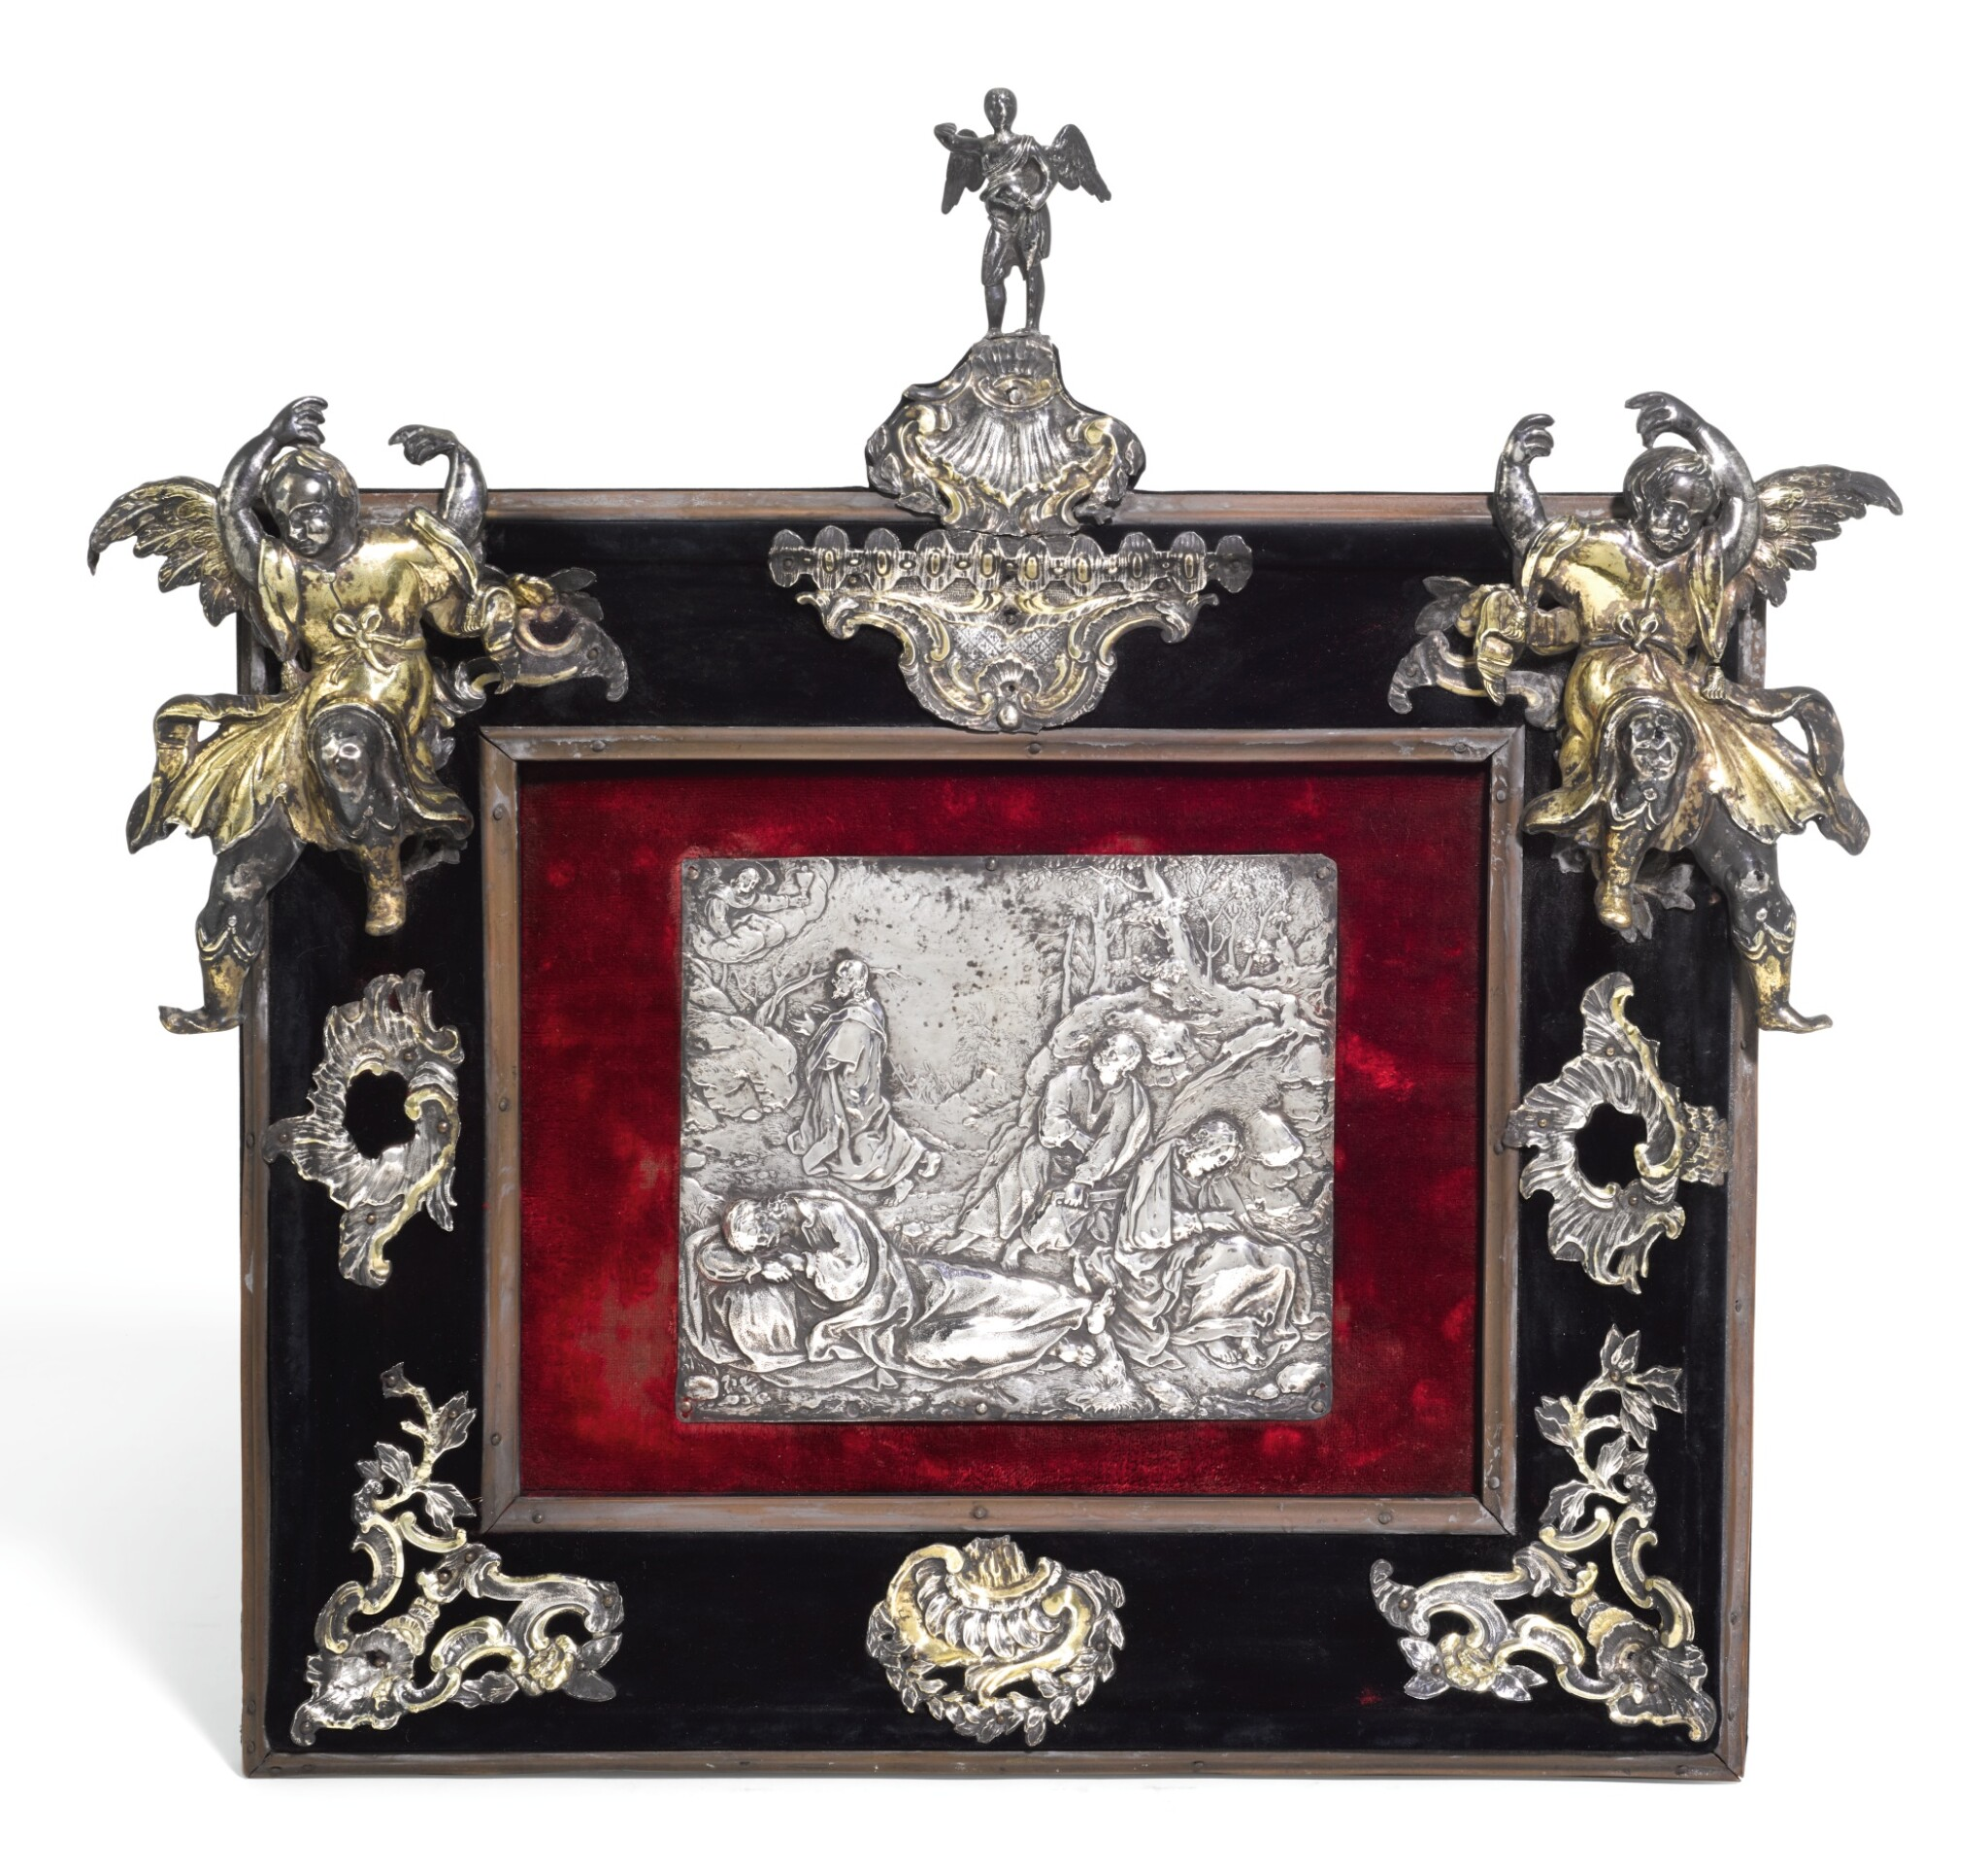 View full screen - View 1 of Lot 150. A CONTINENTAL SILVER MOUNTED DEVOTIONAL FRAME, UNMARKED, NETHERLANDISH, 17TH & 18TH CENTURY, CENTRED BY A 17TH CENTURY EMBOSSED PLAQUETTE.